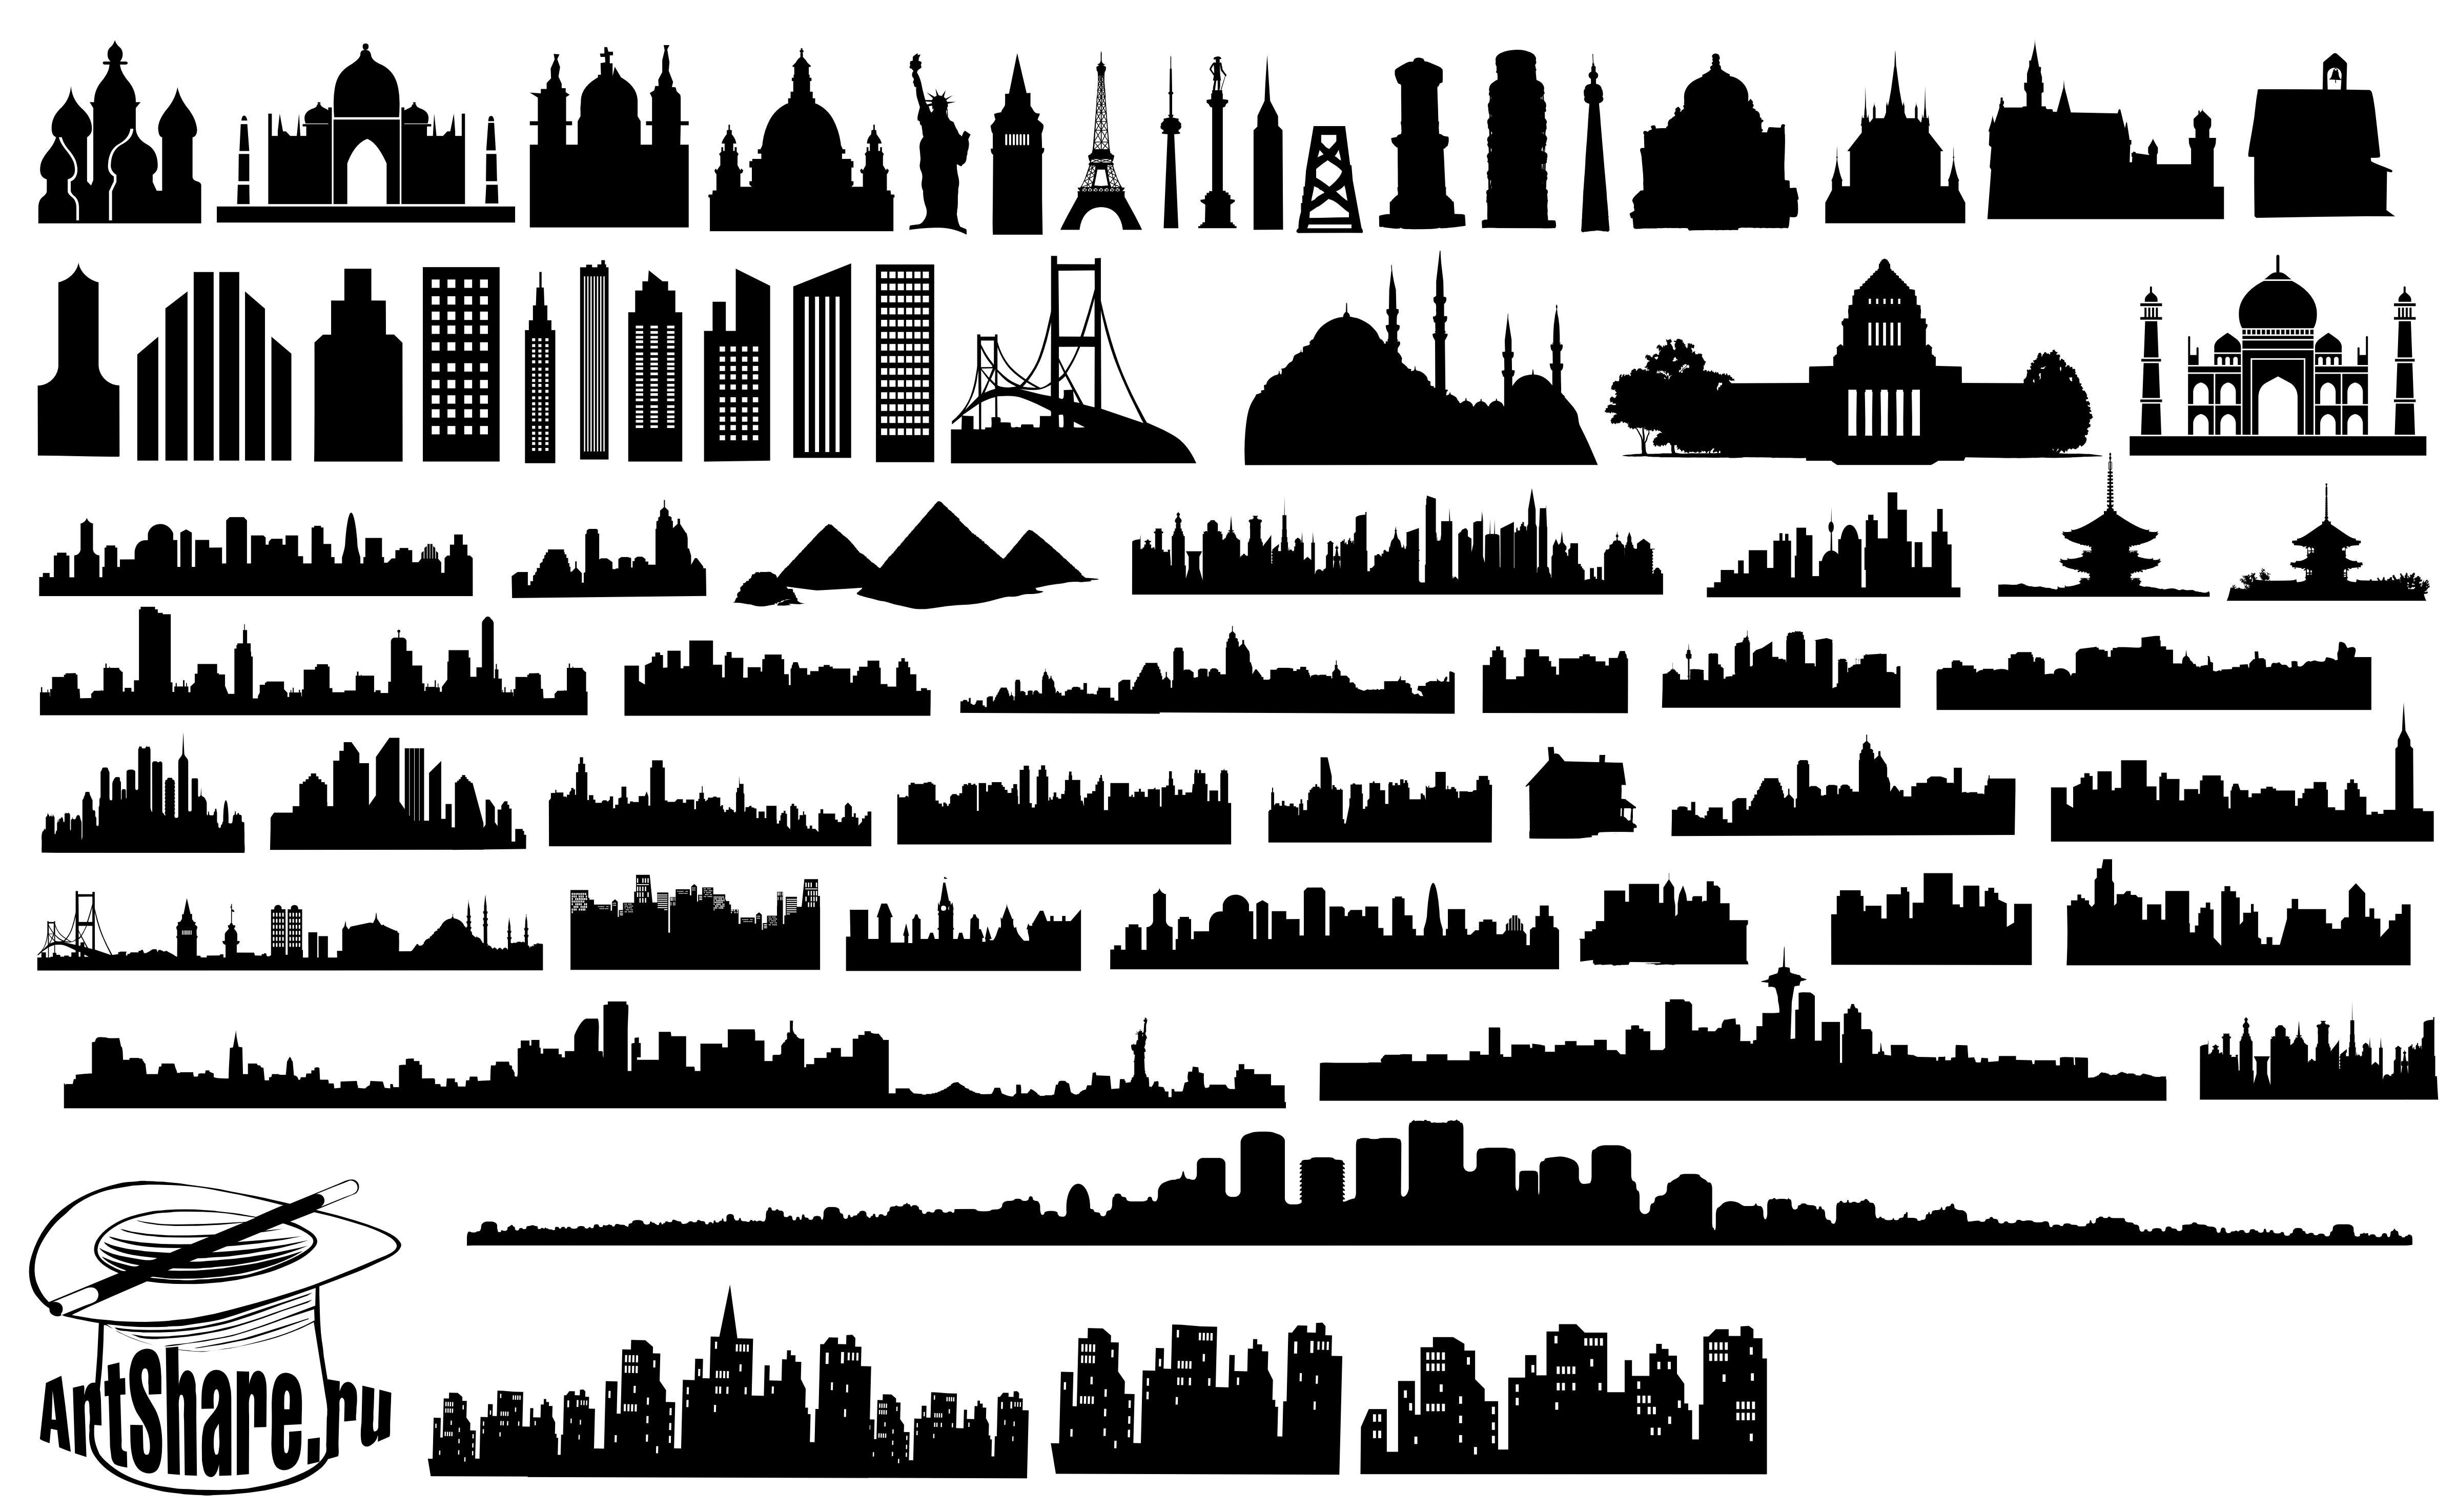 50 Cityscape Silhouettes Silhouettes Vector Pinterest